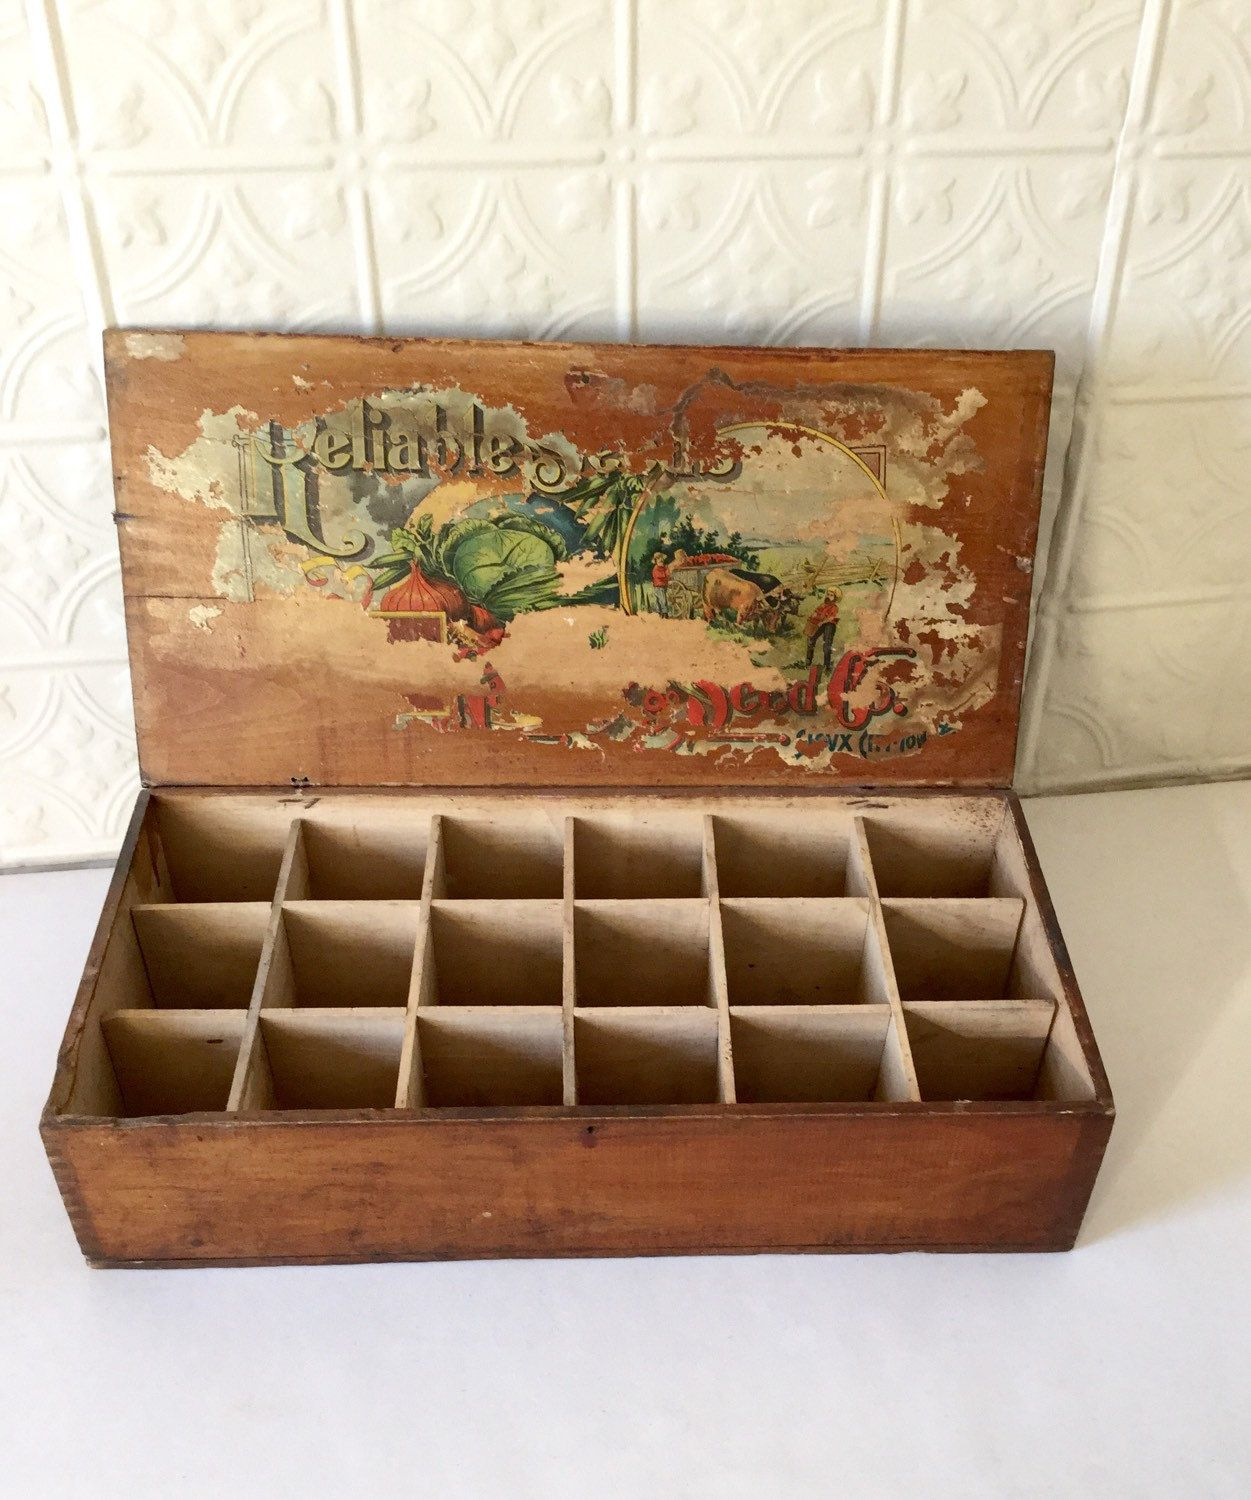 sioux city antique stores Antique Seed Box Sioux City Iowa Divided Wood Store Display by  sioux city antique stores